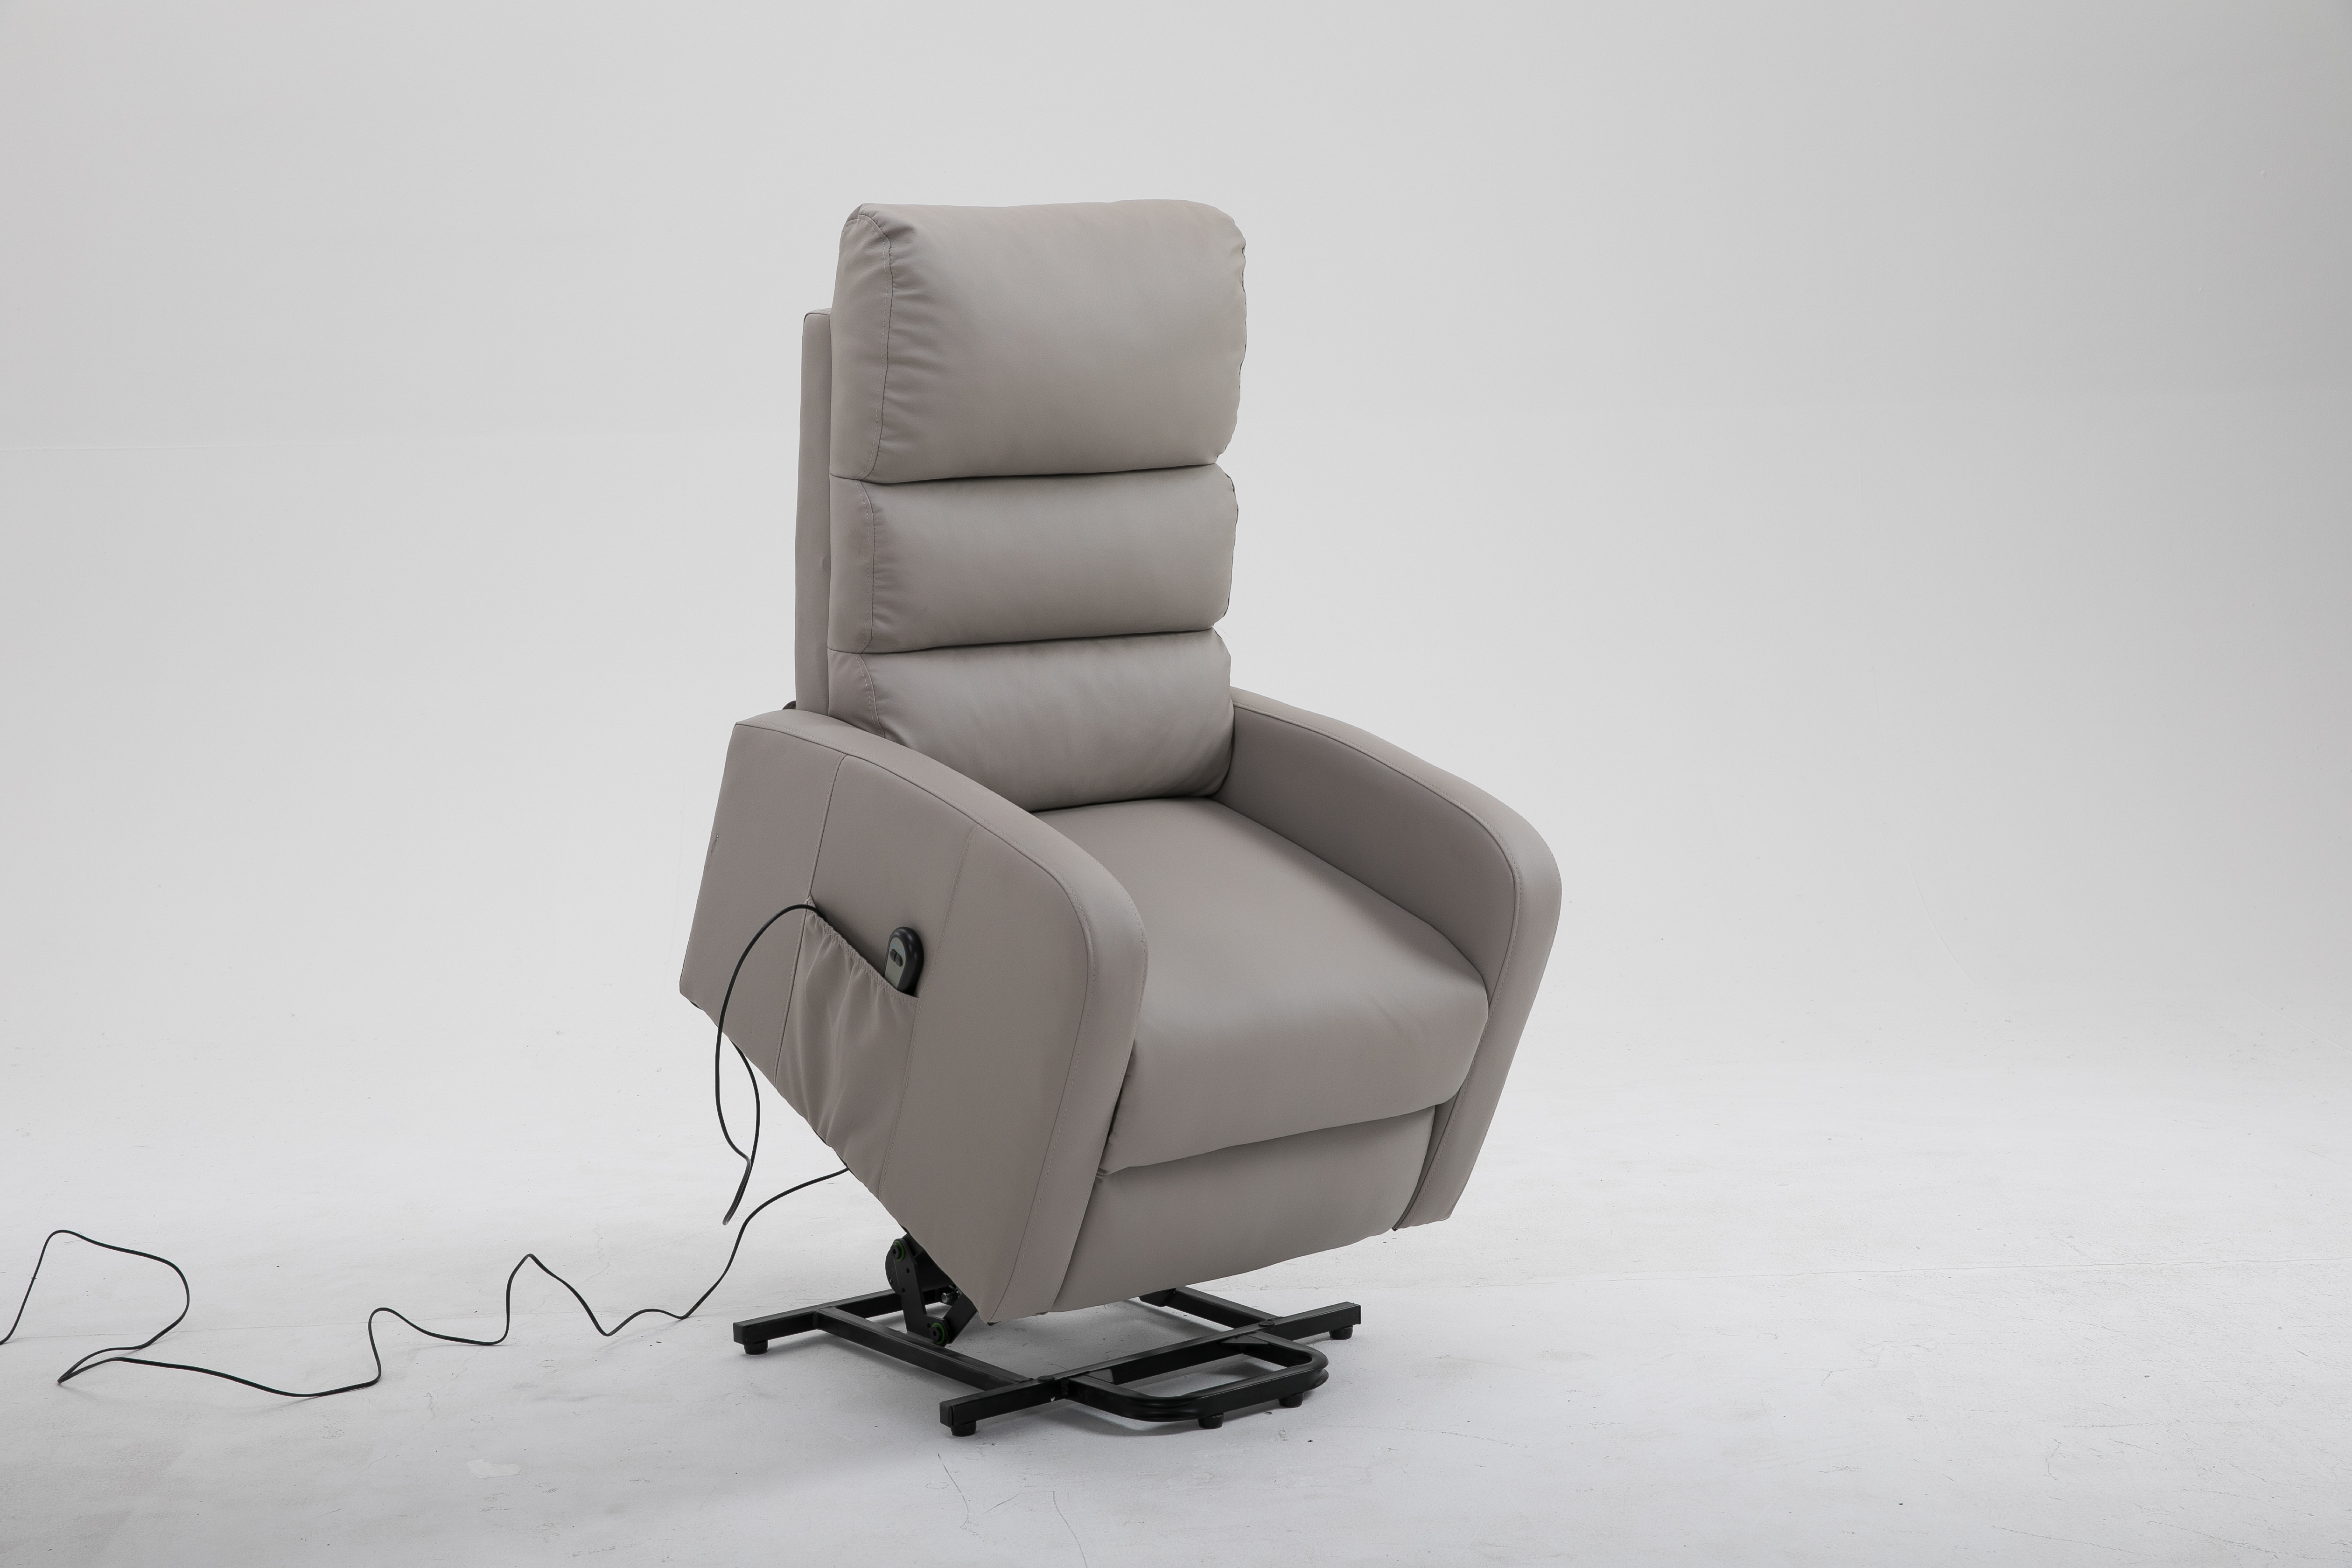 New Easy Lift Chair Heat Amp Recliner Massage Chair 9702